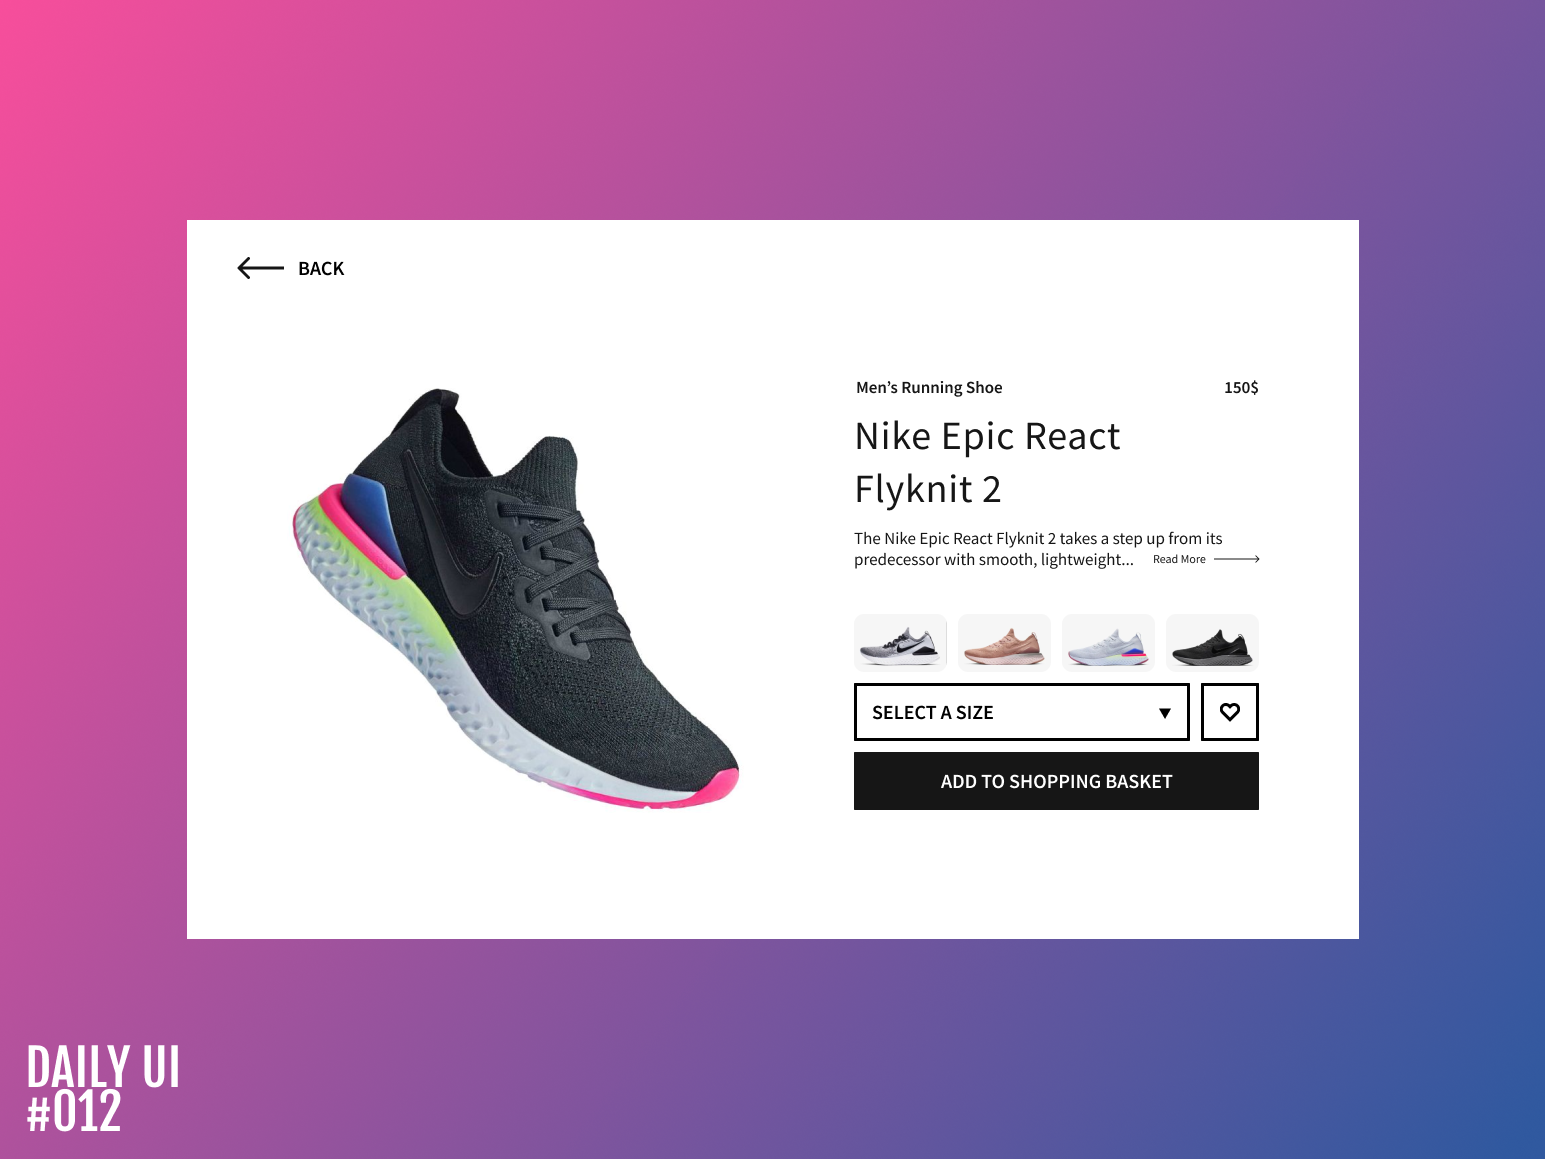 Product details (E-commerce) - Daily UI #012 ecomerce shop nike shoes daily daily ui 012 landing page daily 100 design daily-ui ux daily ui ui